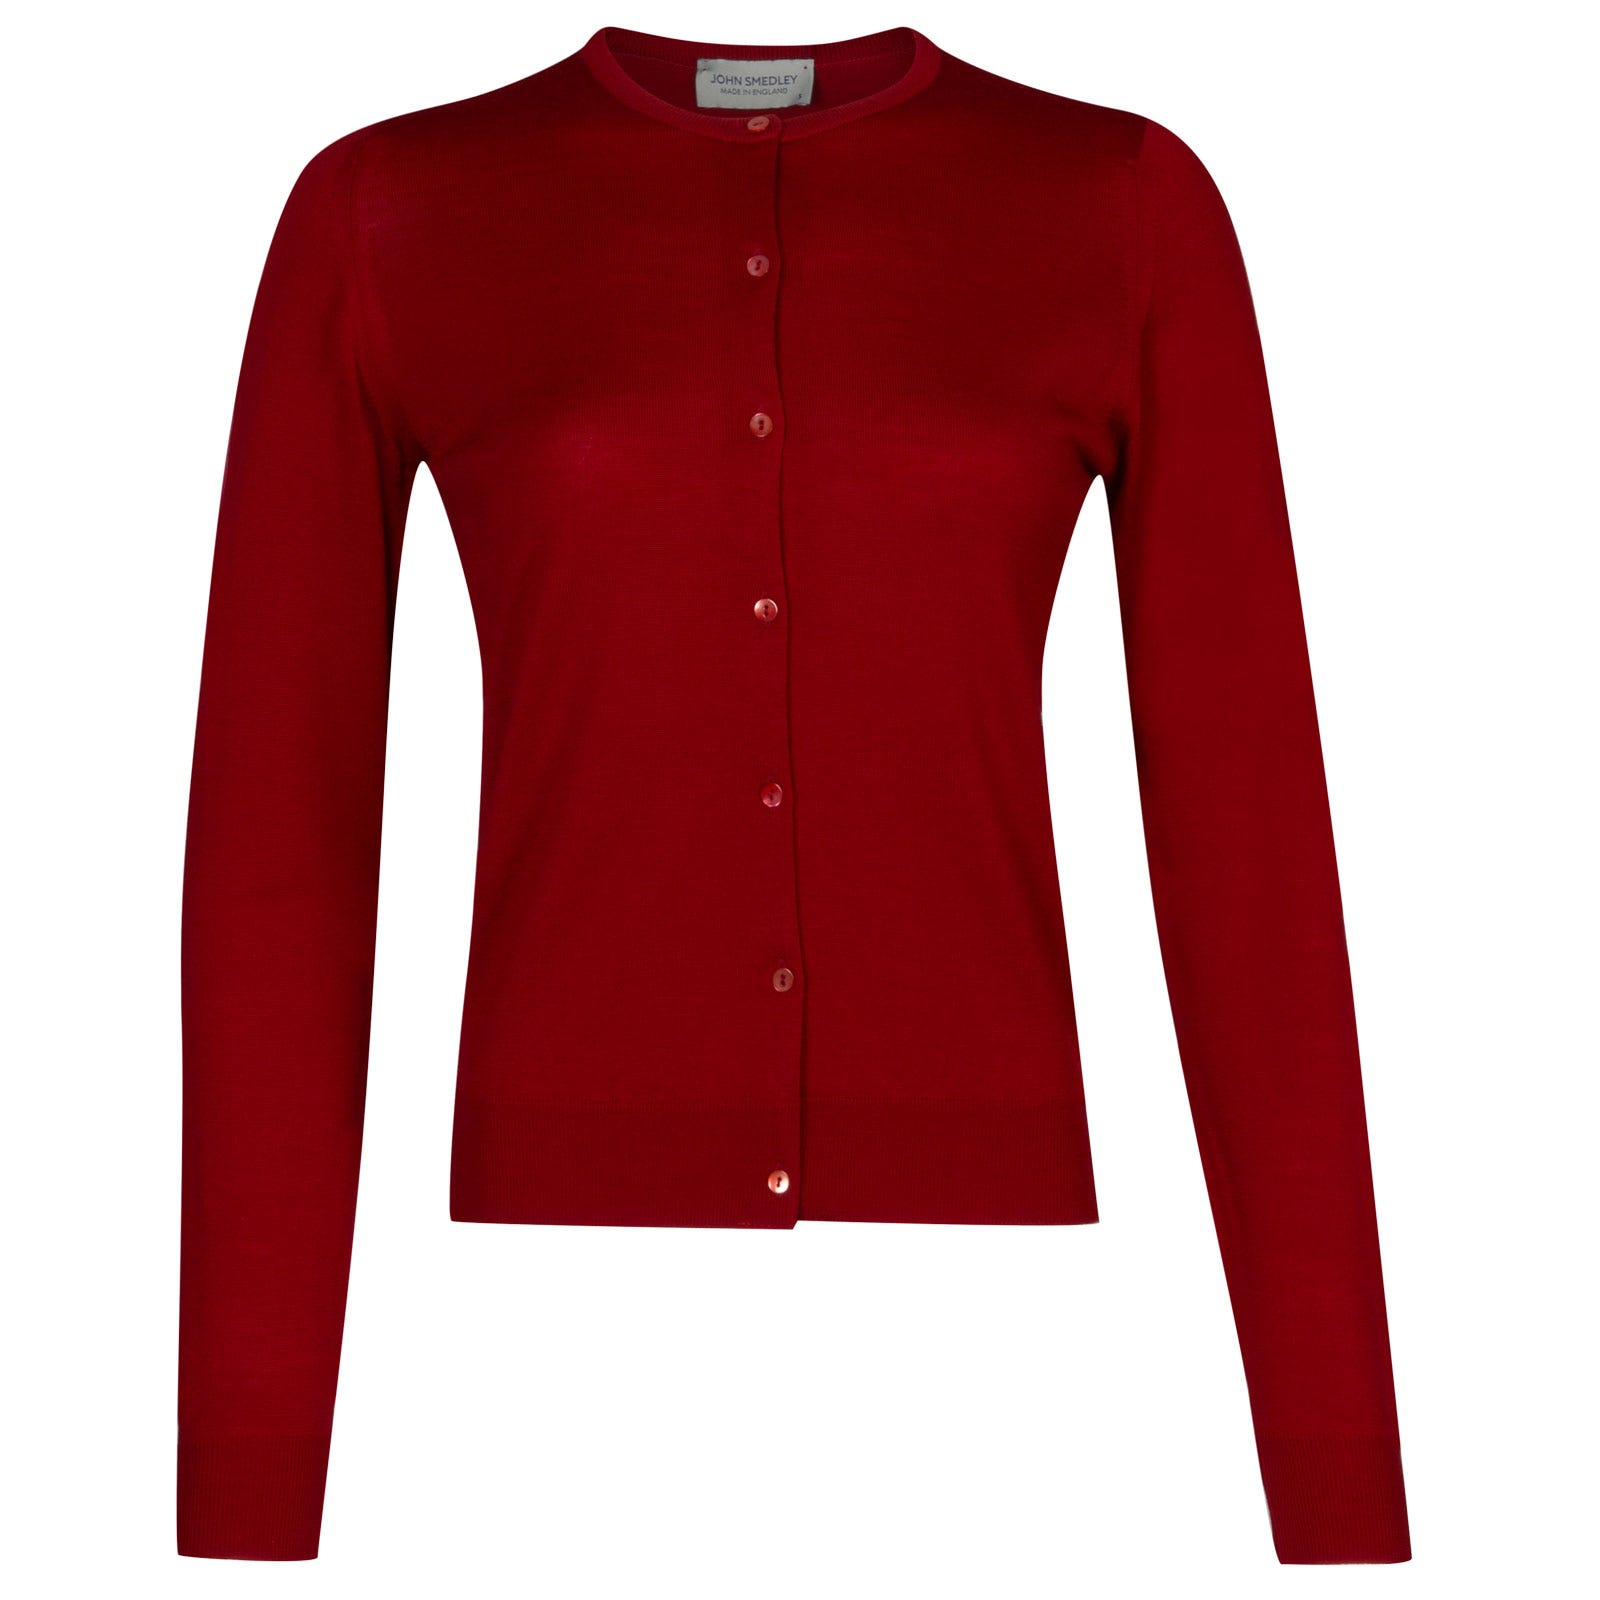 John Smedley florence Merino Wool Cardigan in Crimson Forest-S